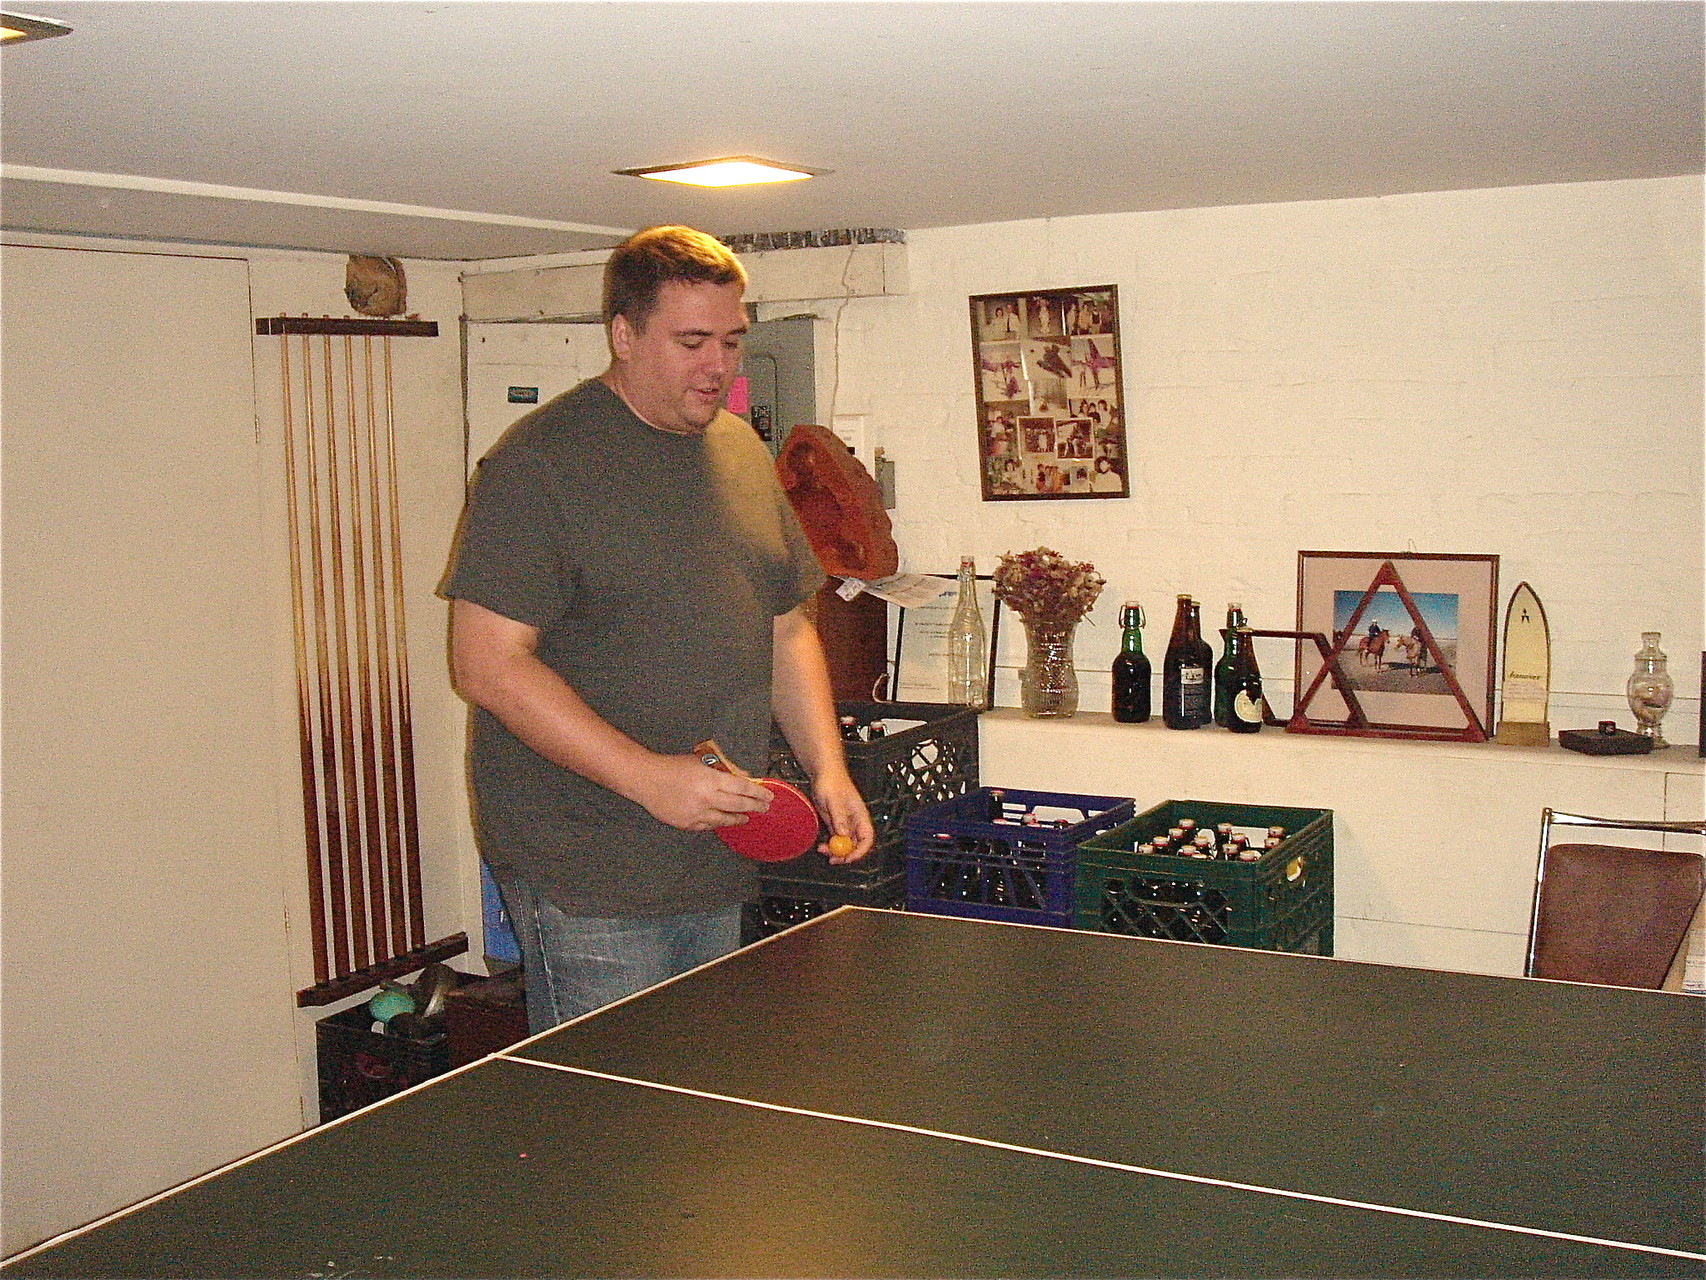 Greg plays ping pong